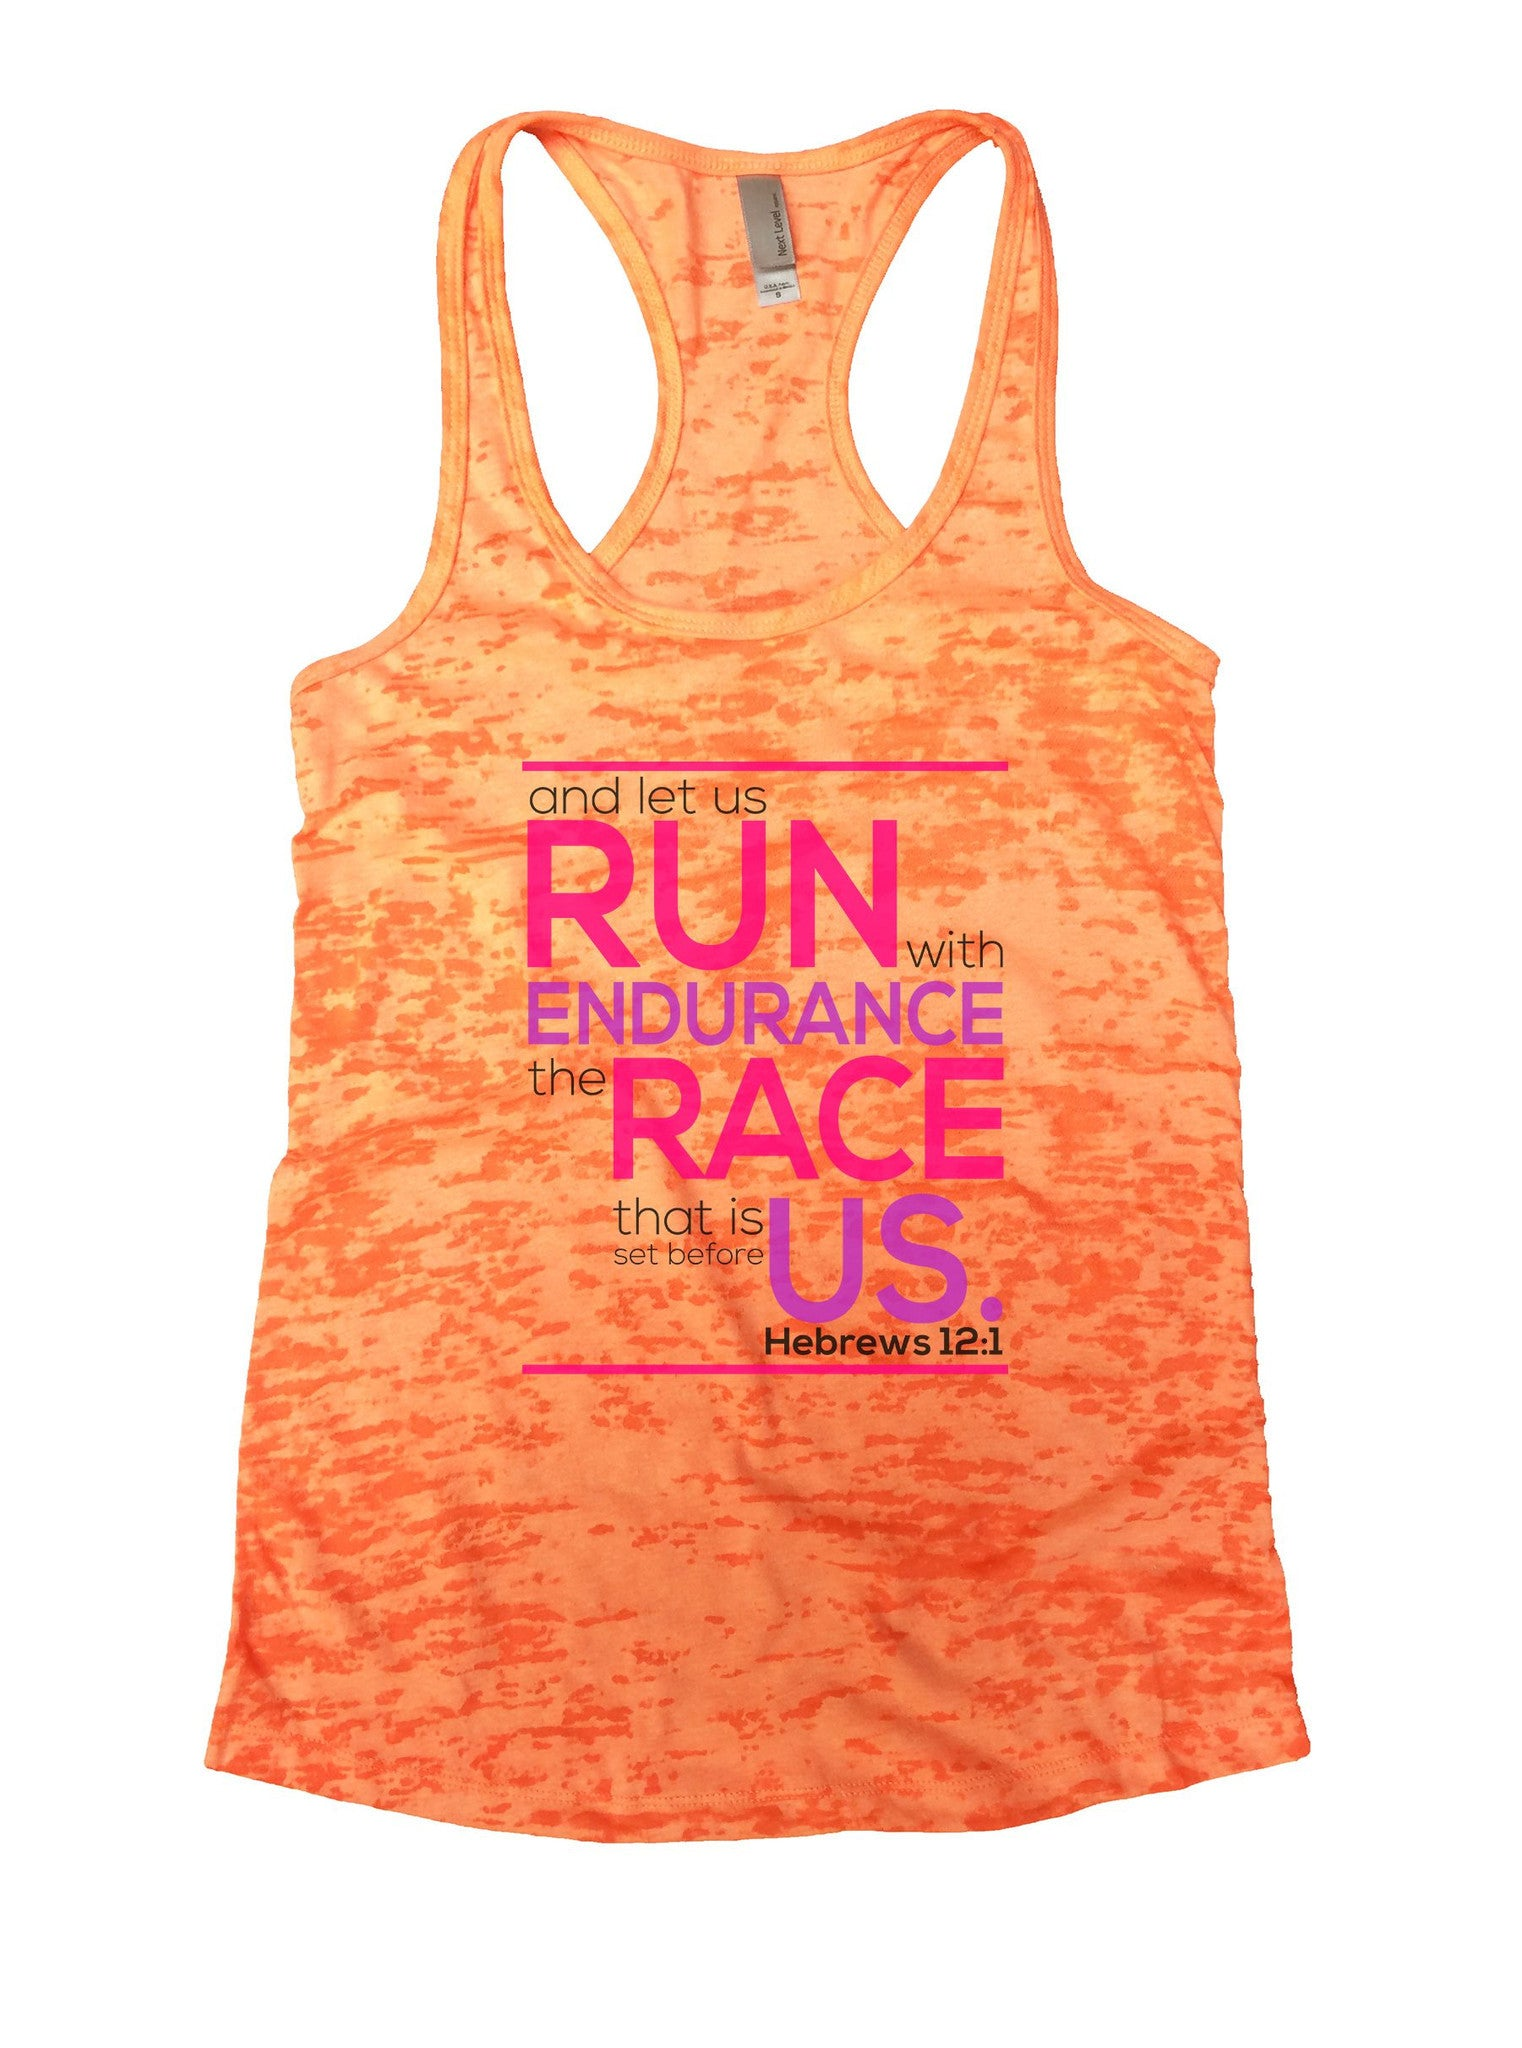 Run Endurance Race Us Burnout Tank Top By BurnoutTankTops.com - 1036 - Funny Shirts Tank Tops Burnouts and Triblends  - 3